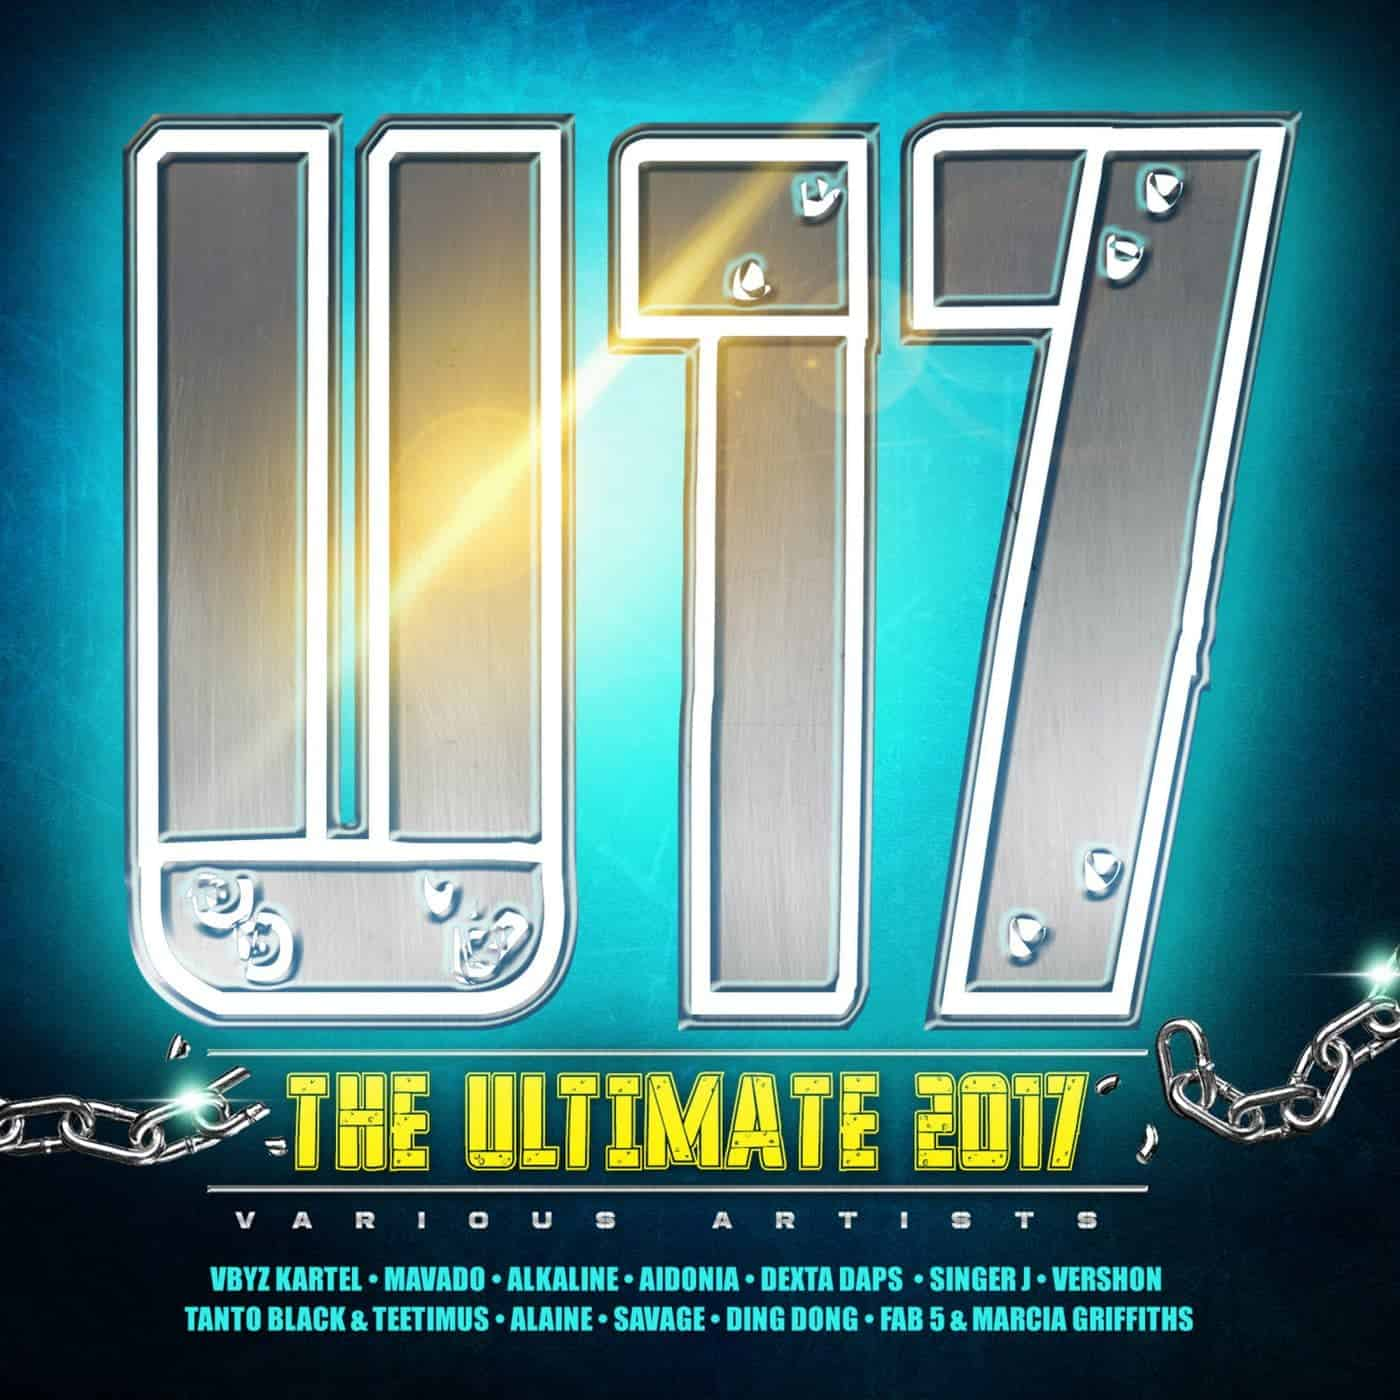 The Ultimate 2017 - One Draw by Marcia Griffiths featuring Fab 5